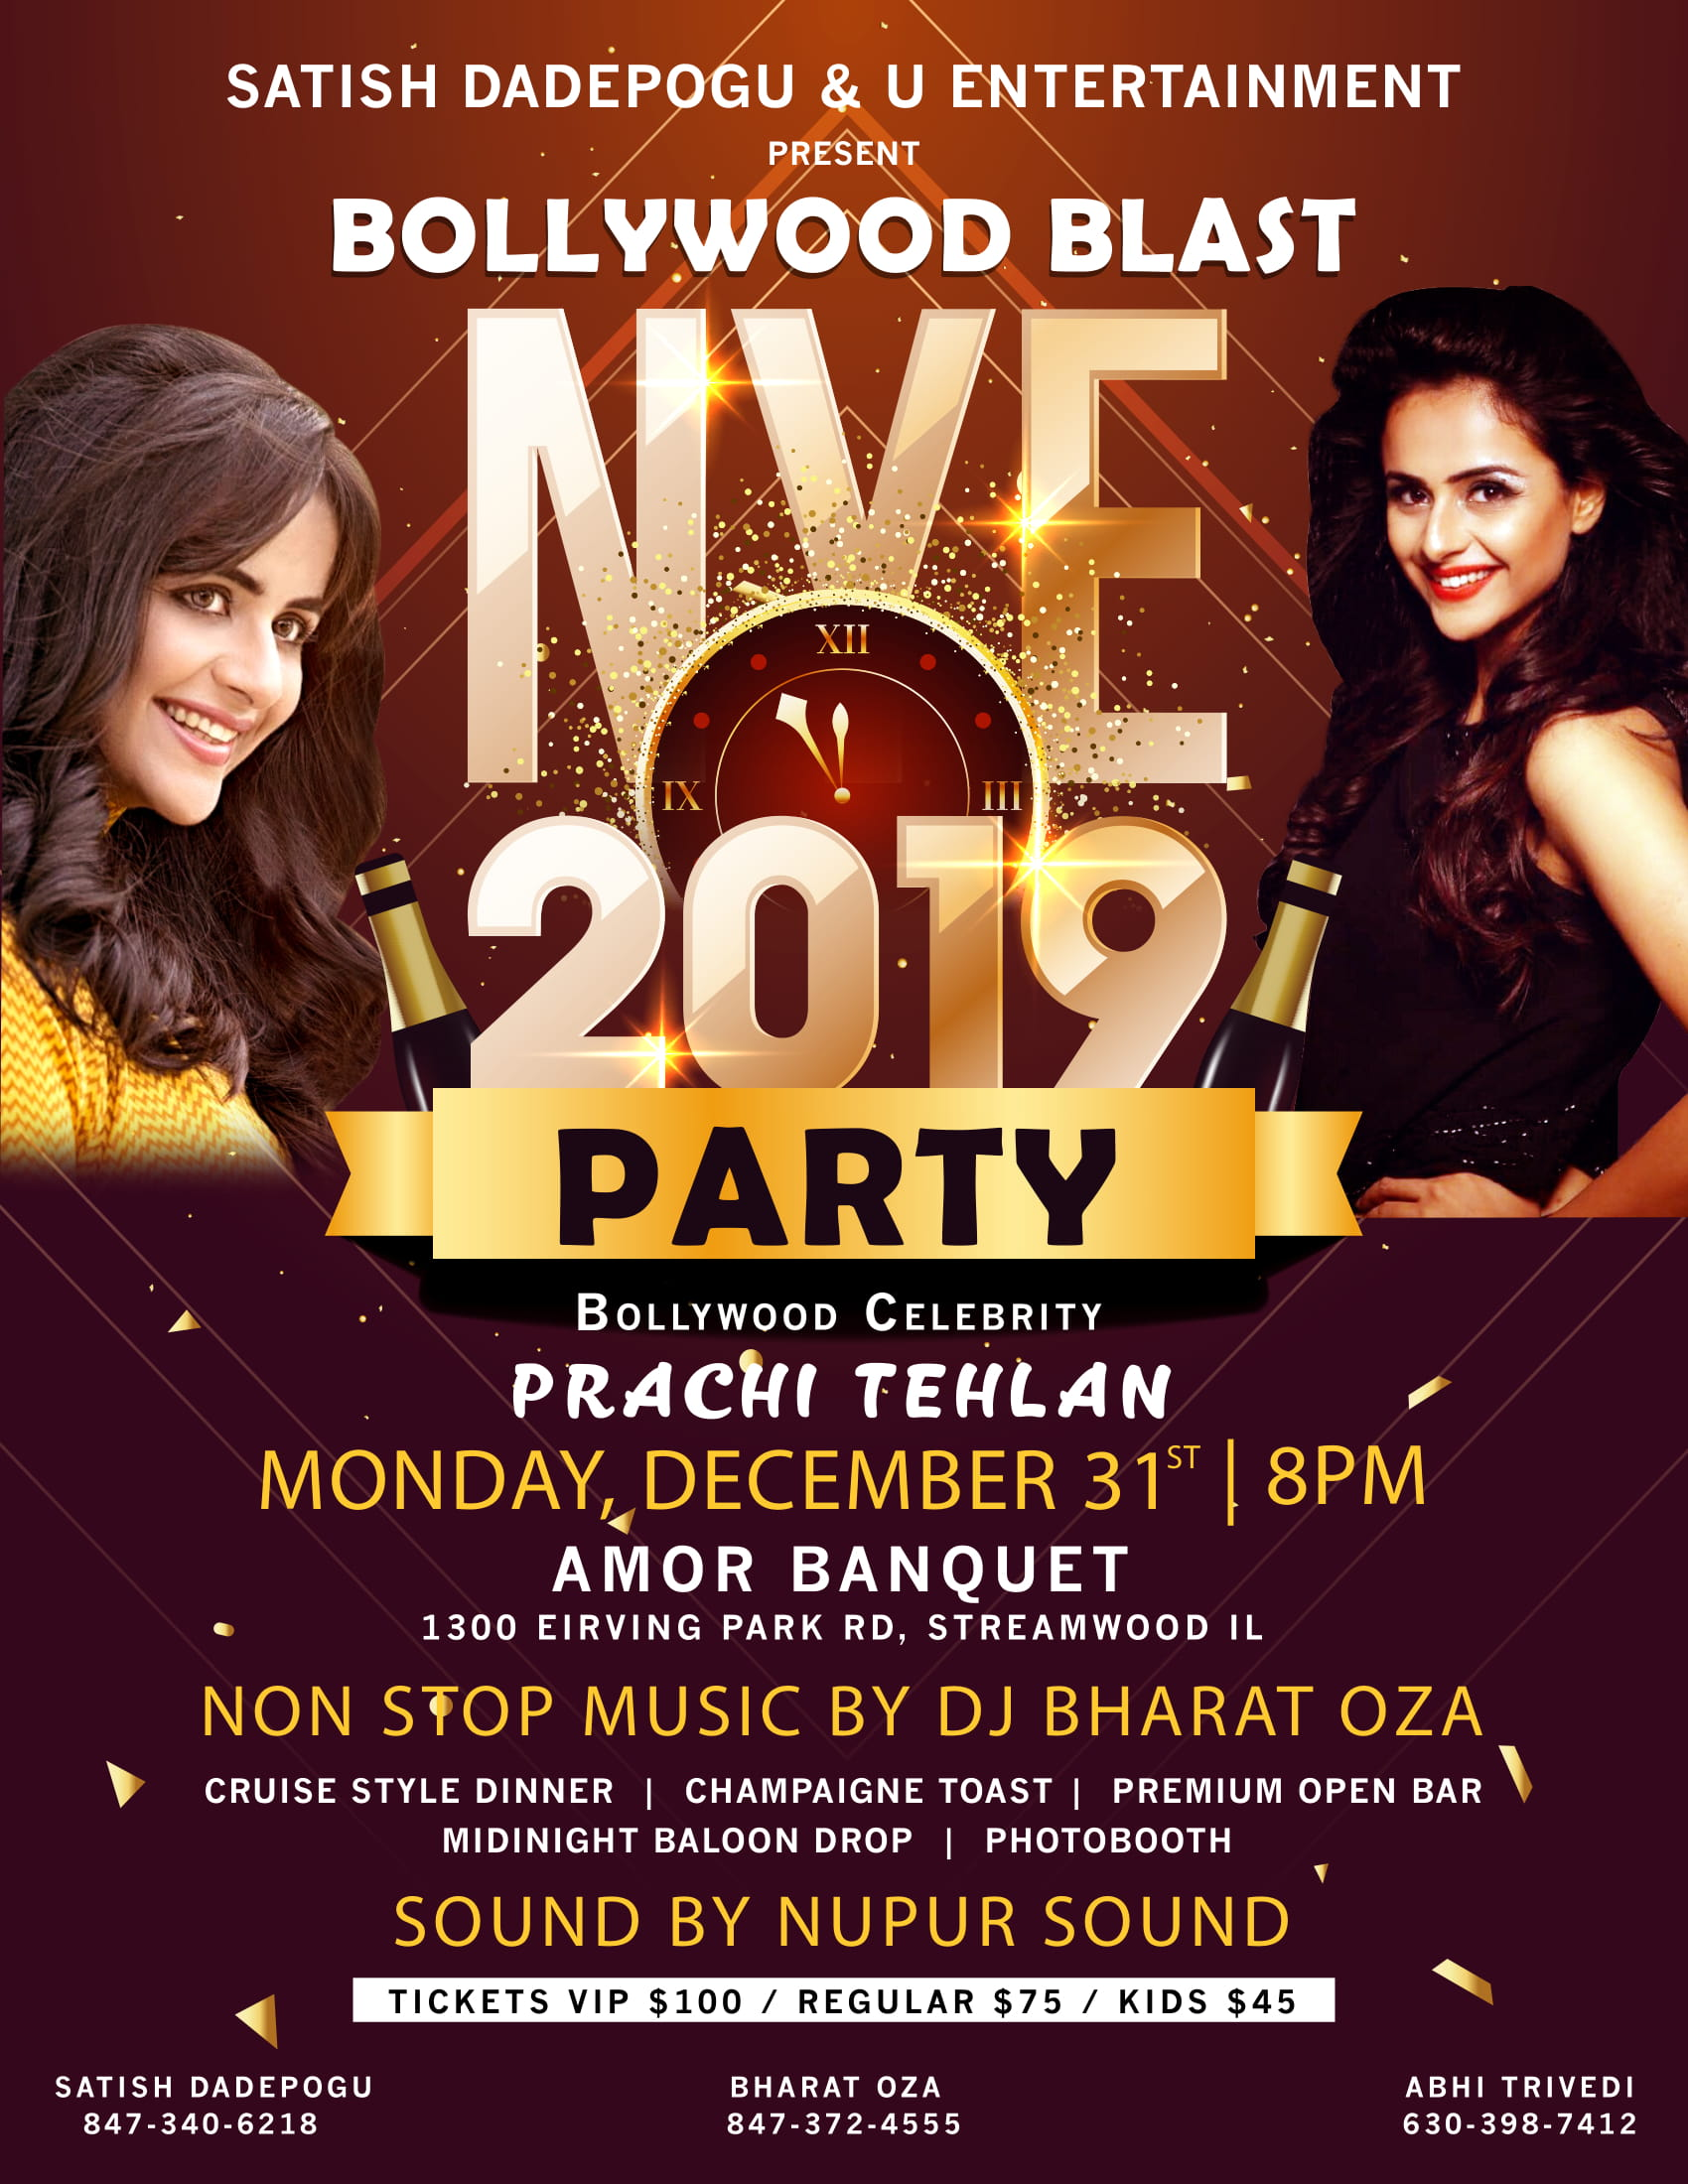 Bollywood Blast with Prachi Tehlan NYE 2019 Chicago